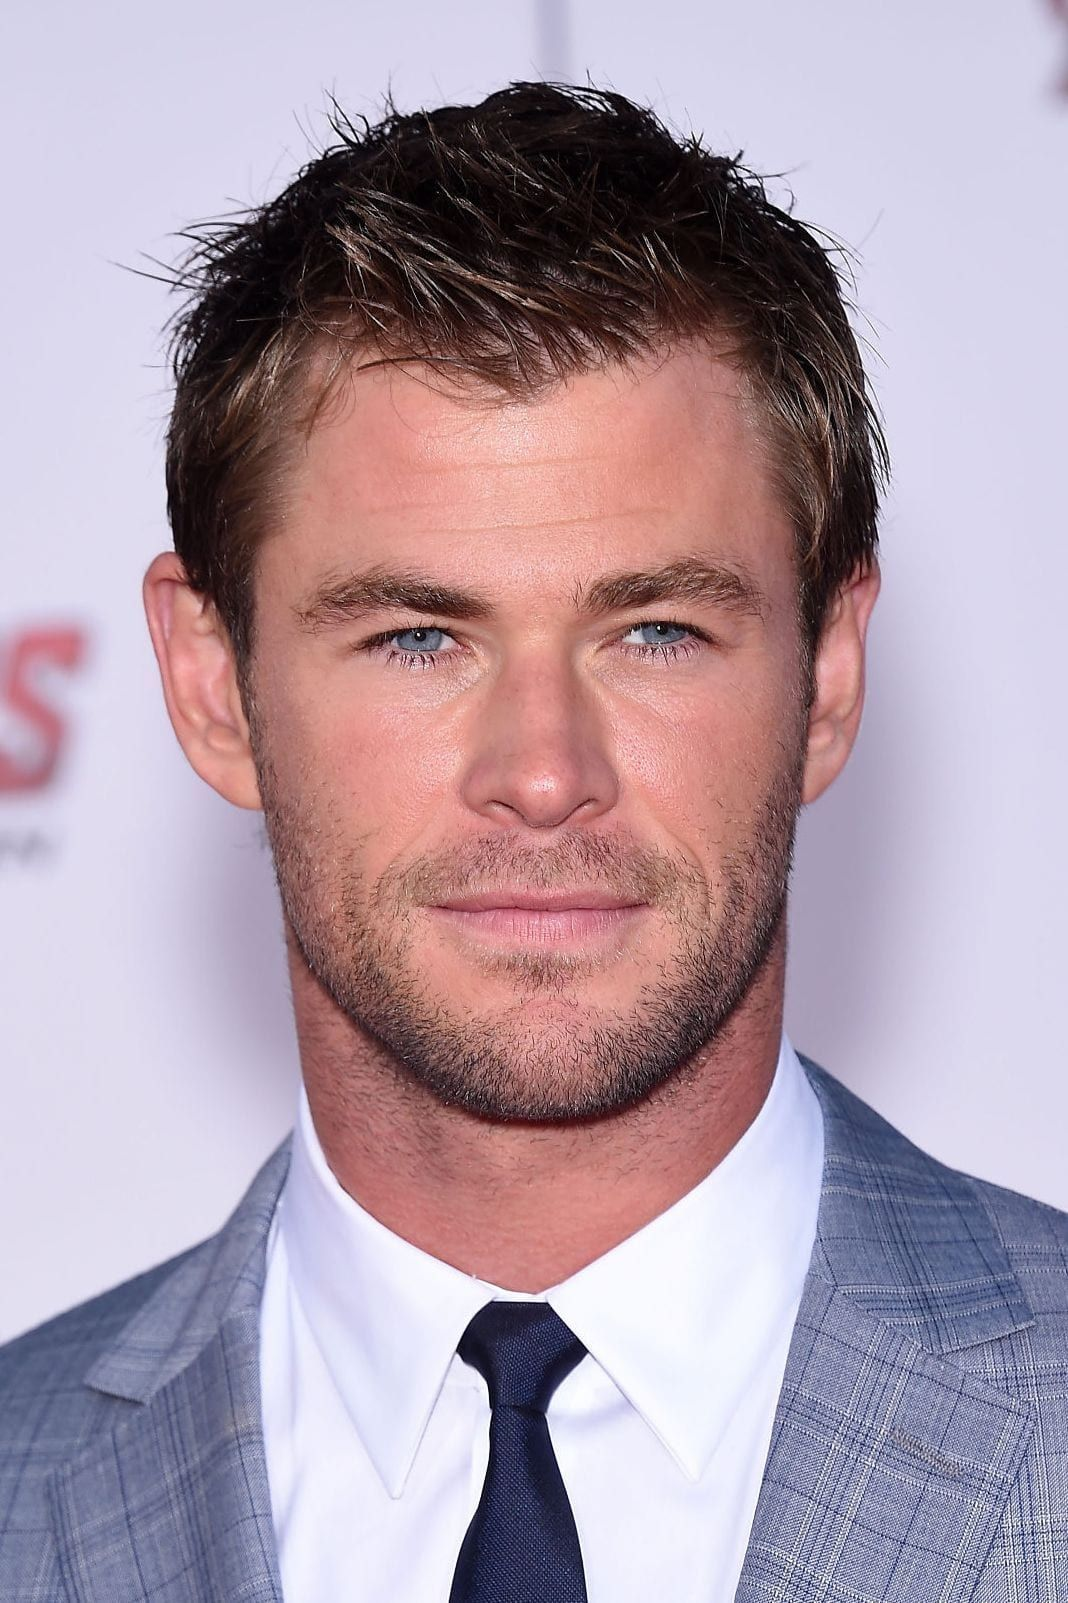 Hairstyles Hemsworth Hairstyle Widows Chris Short Spiky